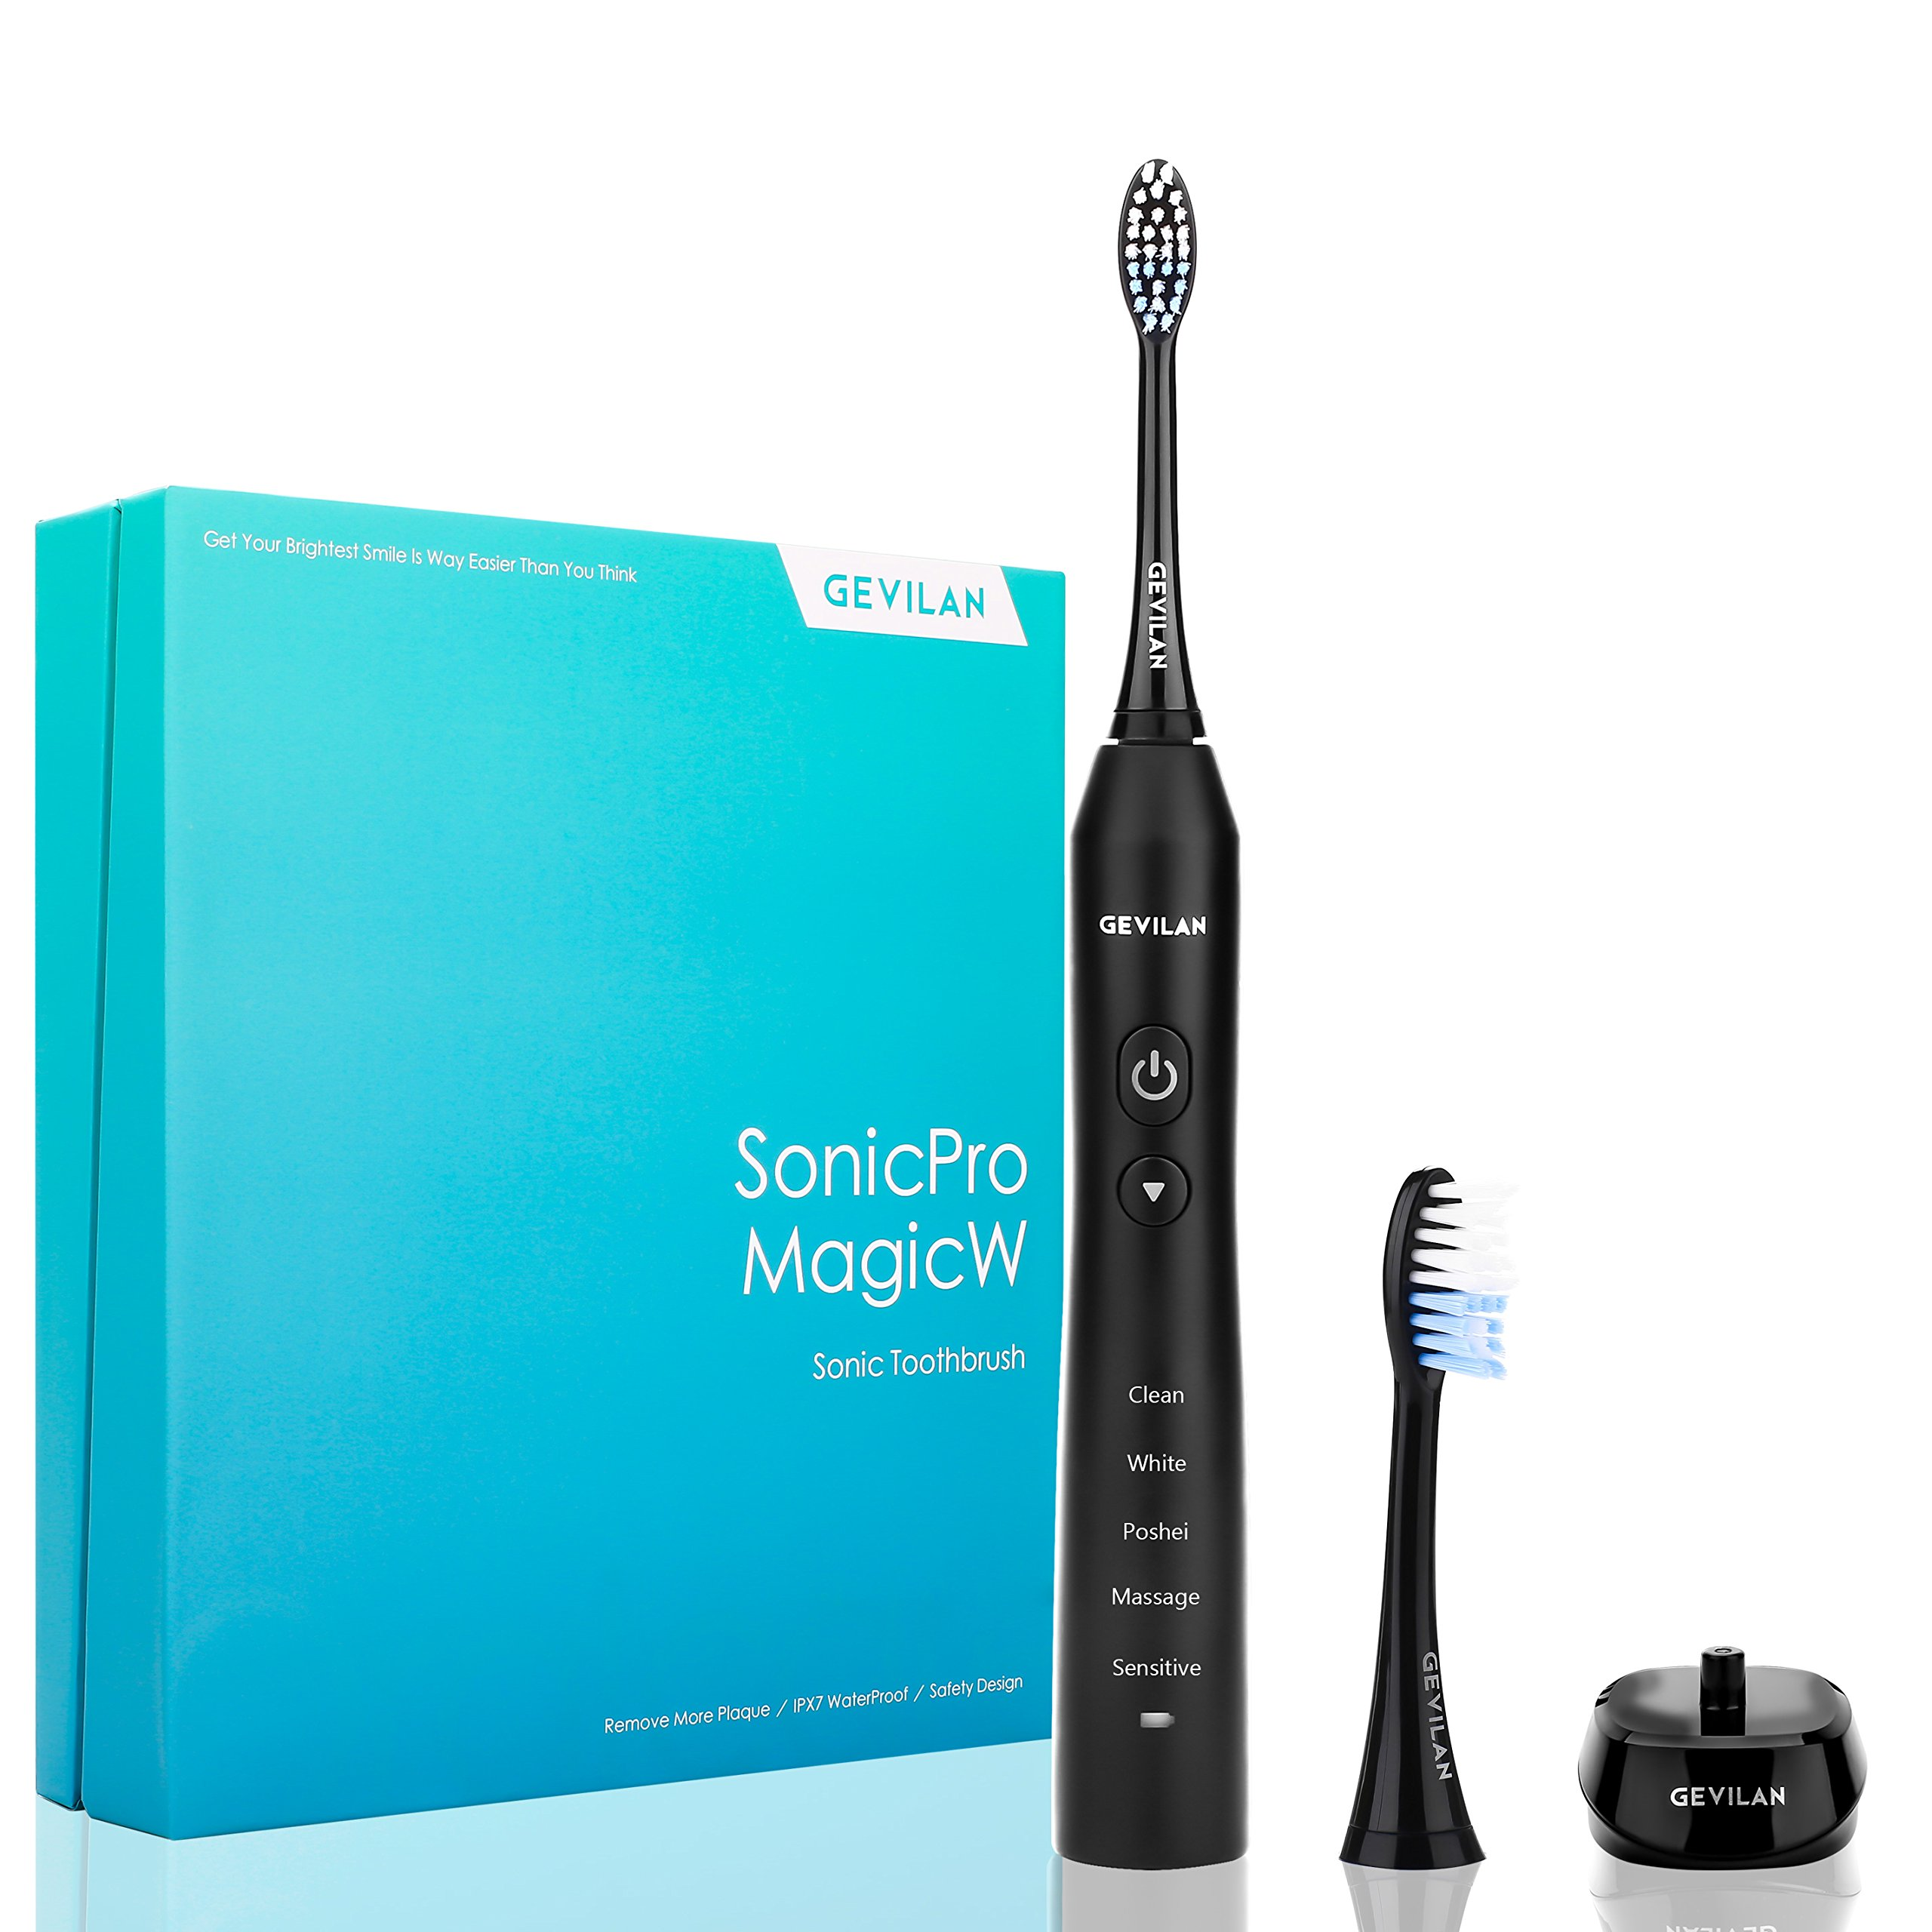 Sonic Pro Electric Toothbrush by Gevilan, 48000 Powerful Vibration with Rechargeable Battery, 5 Modes with Smart Timer, Waterproof and Portable for Daily Oral Care, Home and Travel